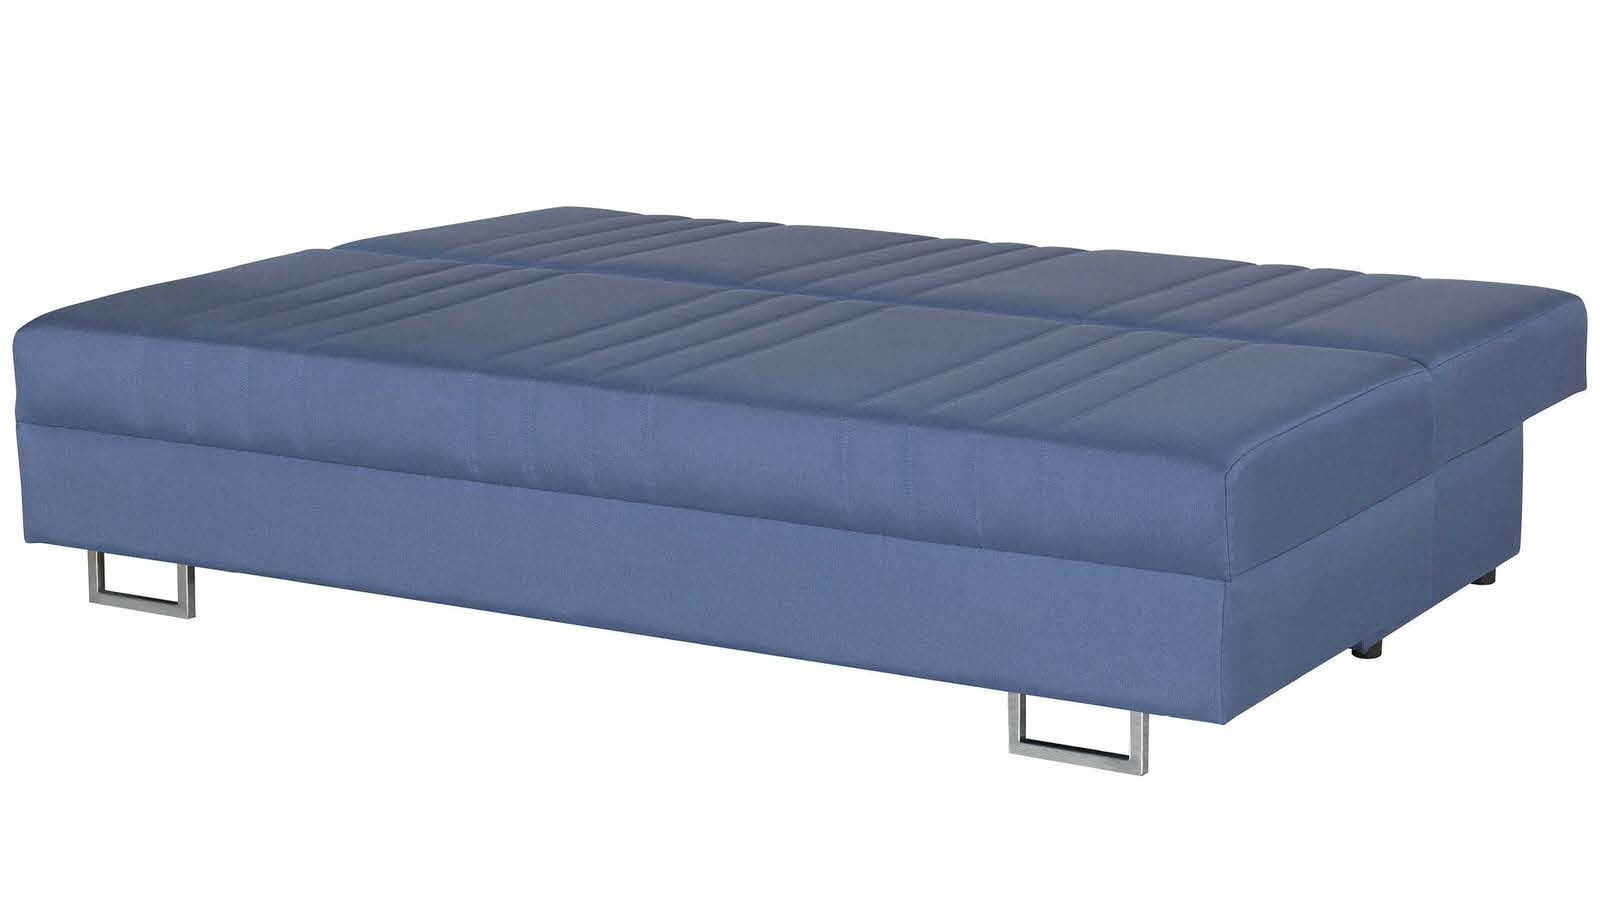 Flex motion blue queen sofa bed w storage by casamode for Sofa bed name